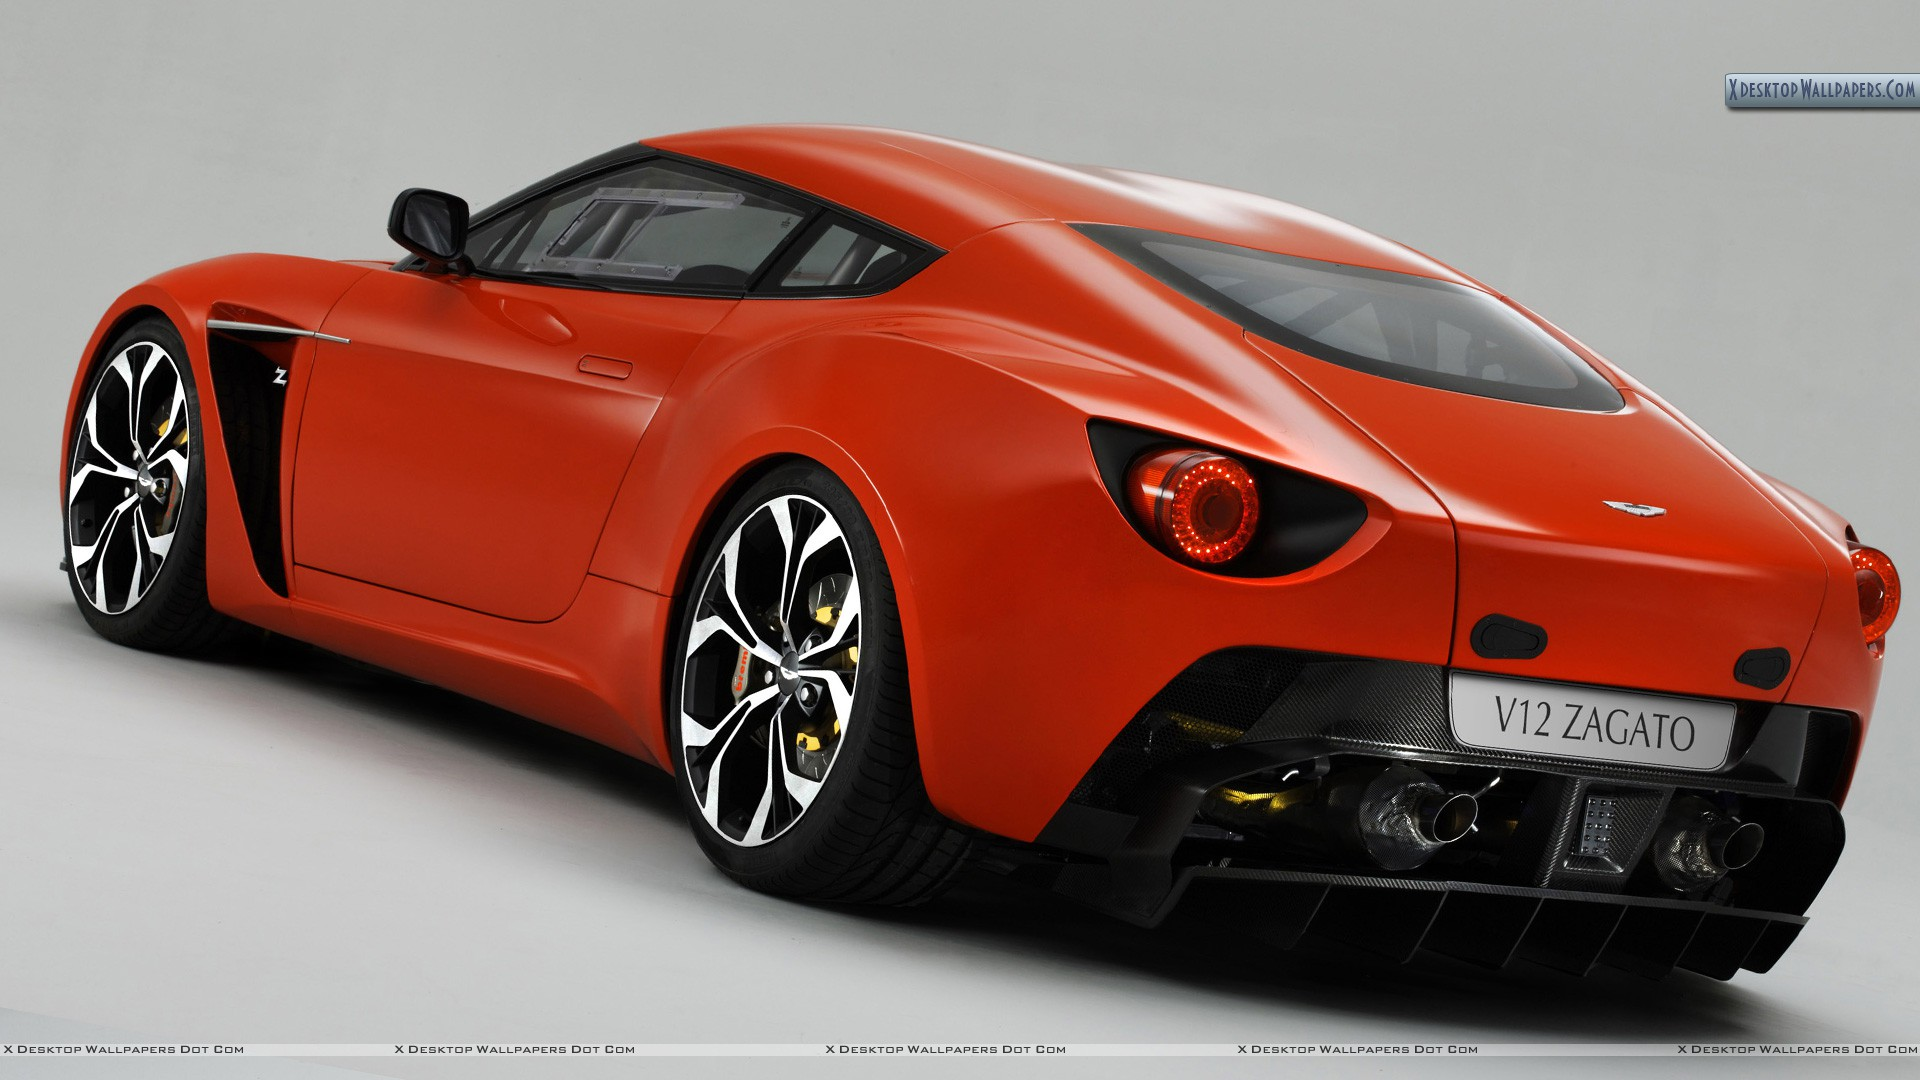 Aston Martin Wallpapers Photos Images In Hd